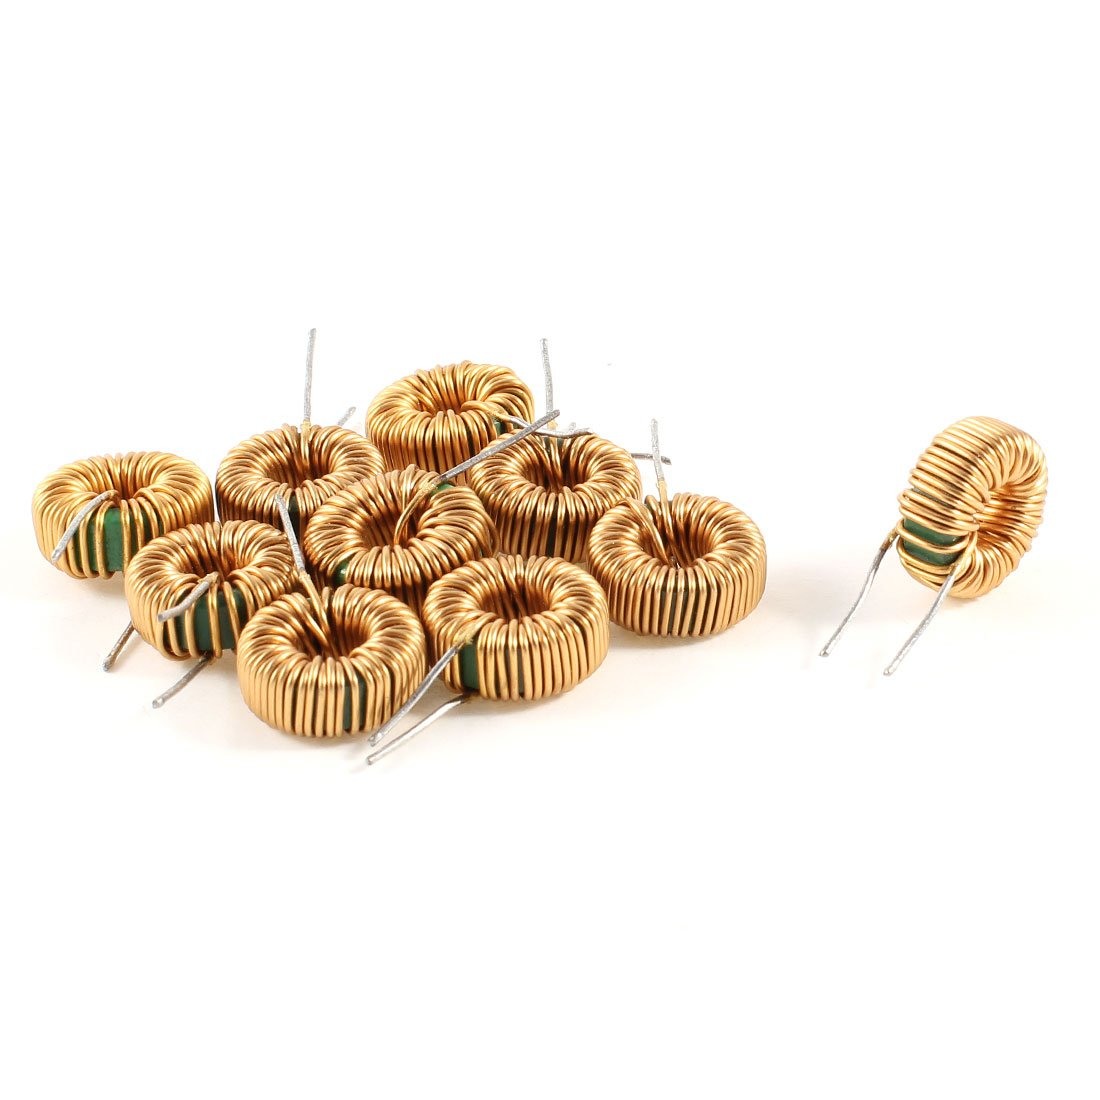 Uxcell a13071500ux0192 10 Piece Toroid Core Inductor Wire Wind Wound 10MH 40mOhm 2 Amp, Coil